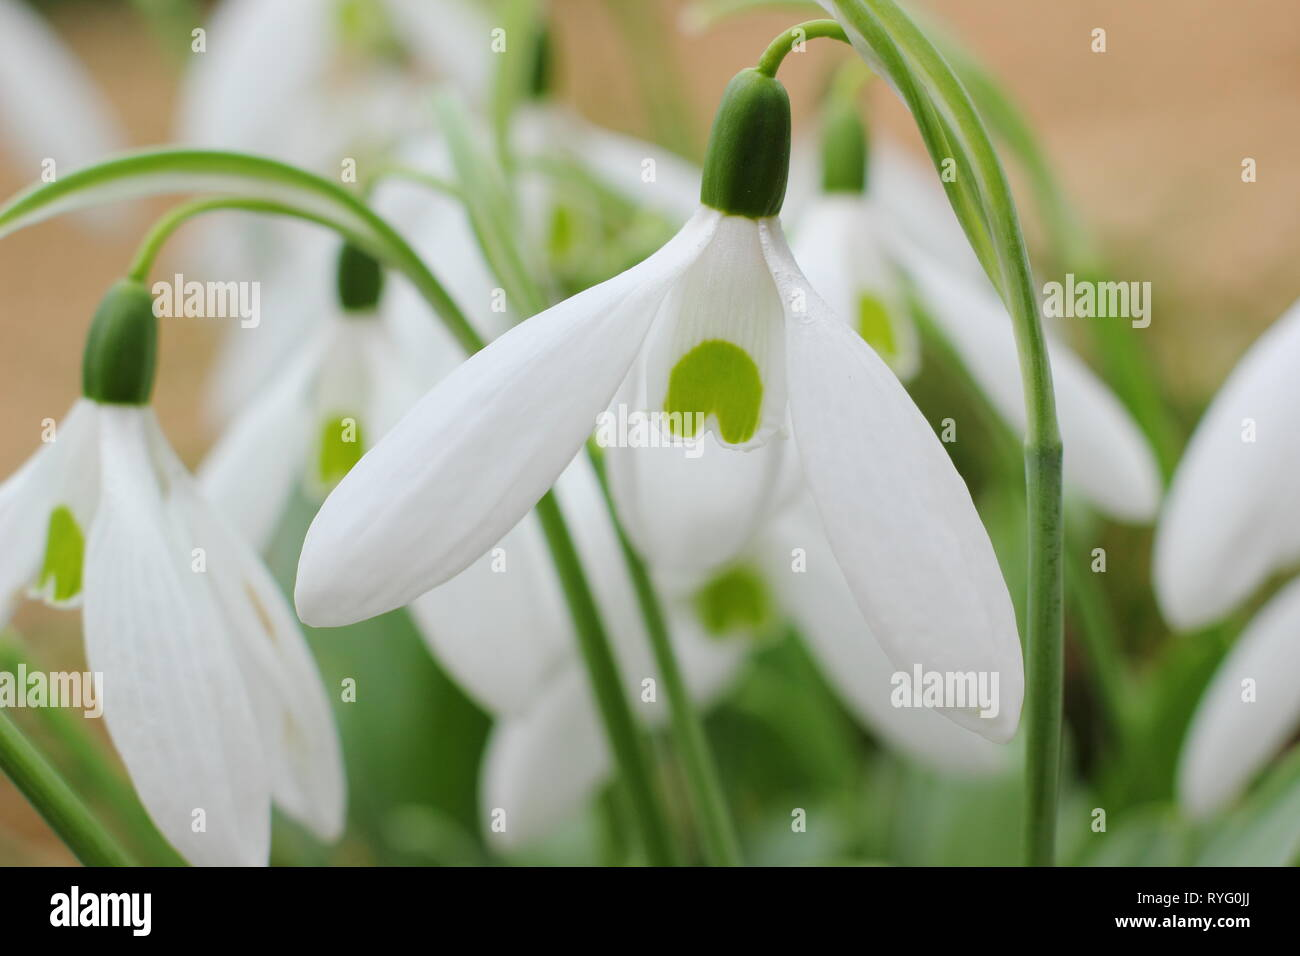 Galanthus 'Bill Bishop'. Mighty Atom group snowdrop with bold green marking and long outer petals (segments) - February, UK garden - Stock Image